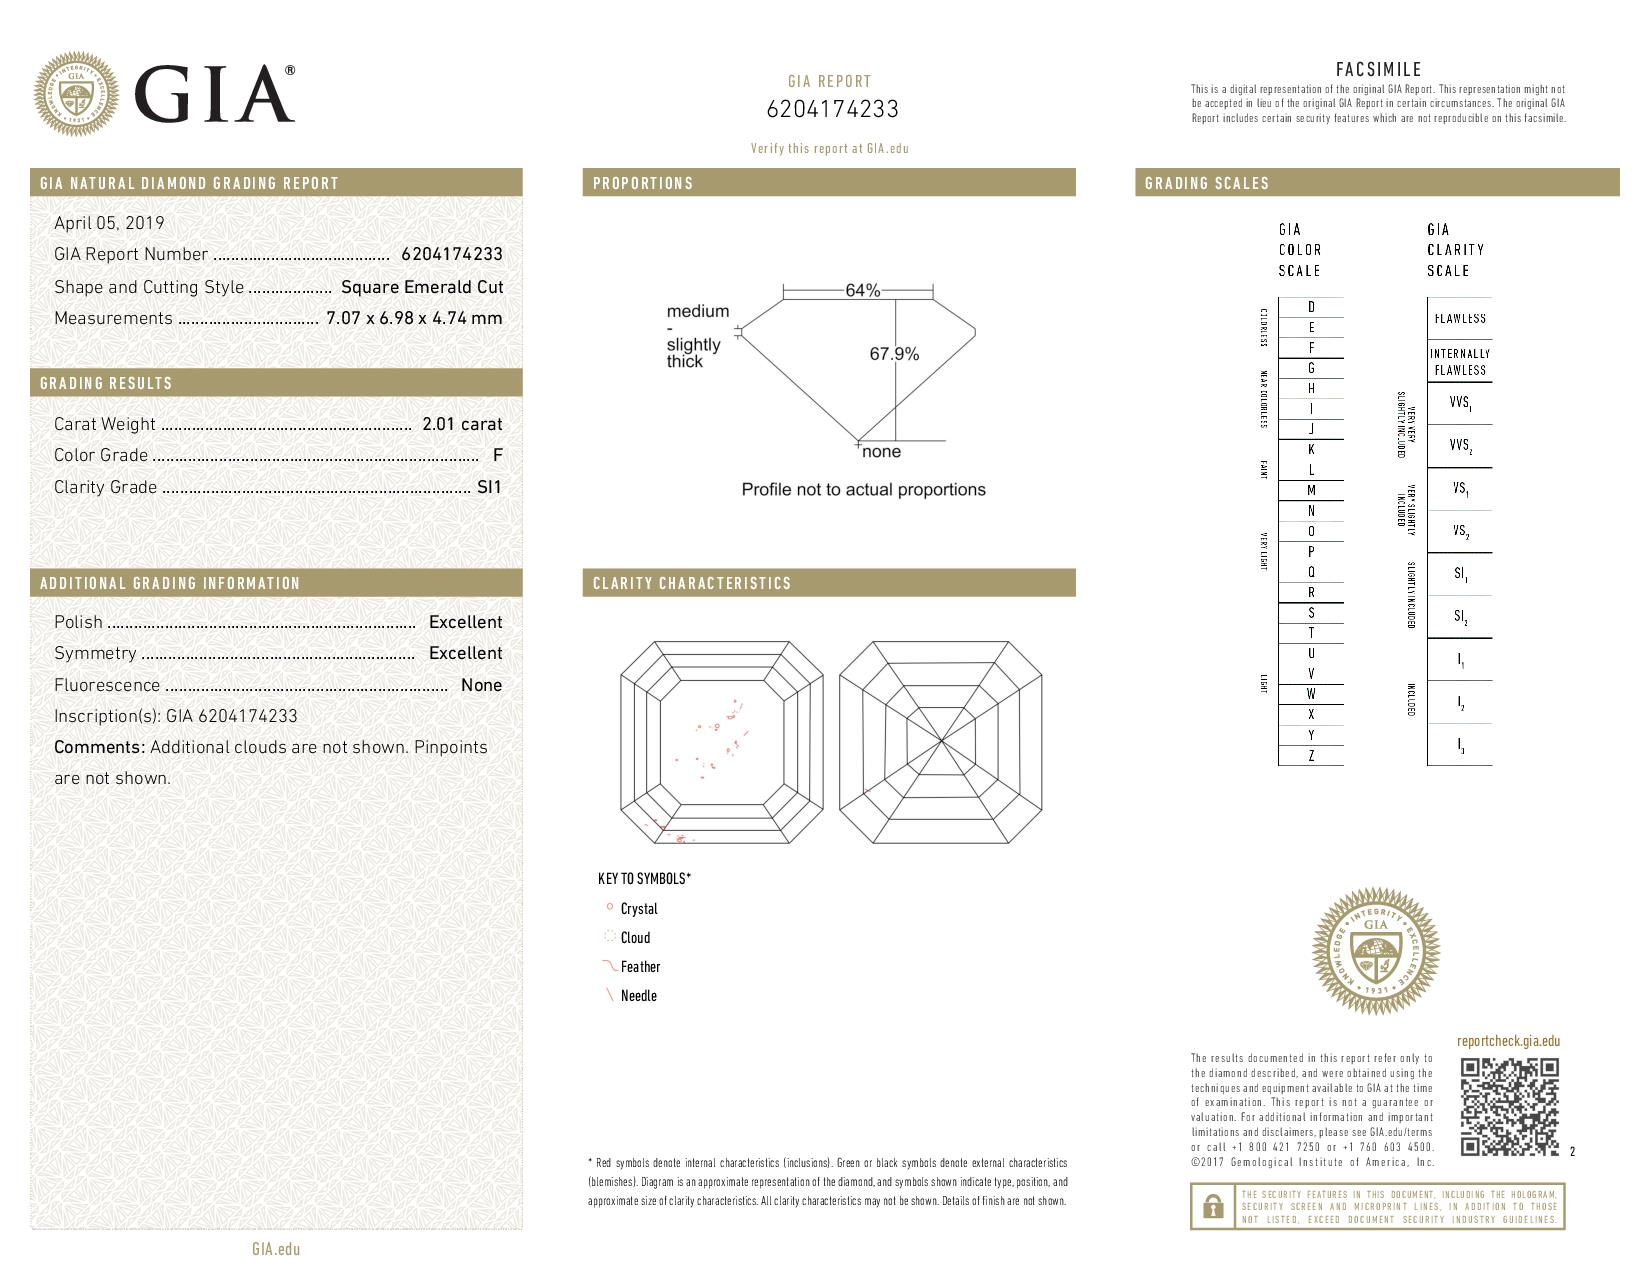 This is a 2.01 carat asscher shape, F color, SI1 clarity natural diamond accompanied by a GIA grading report.